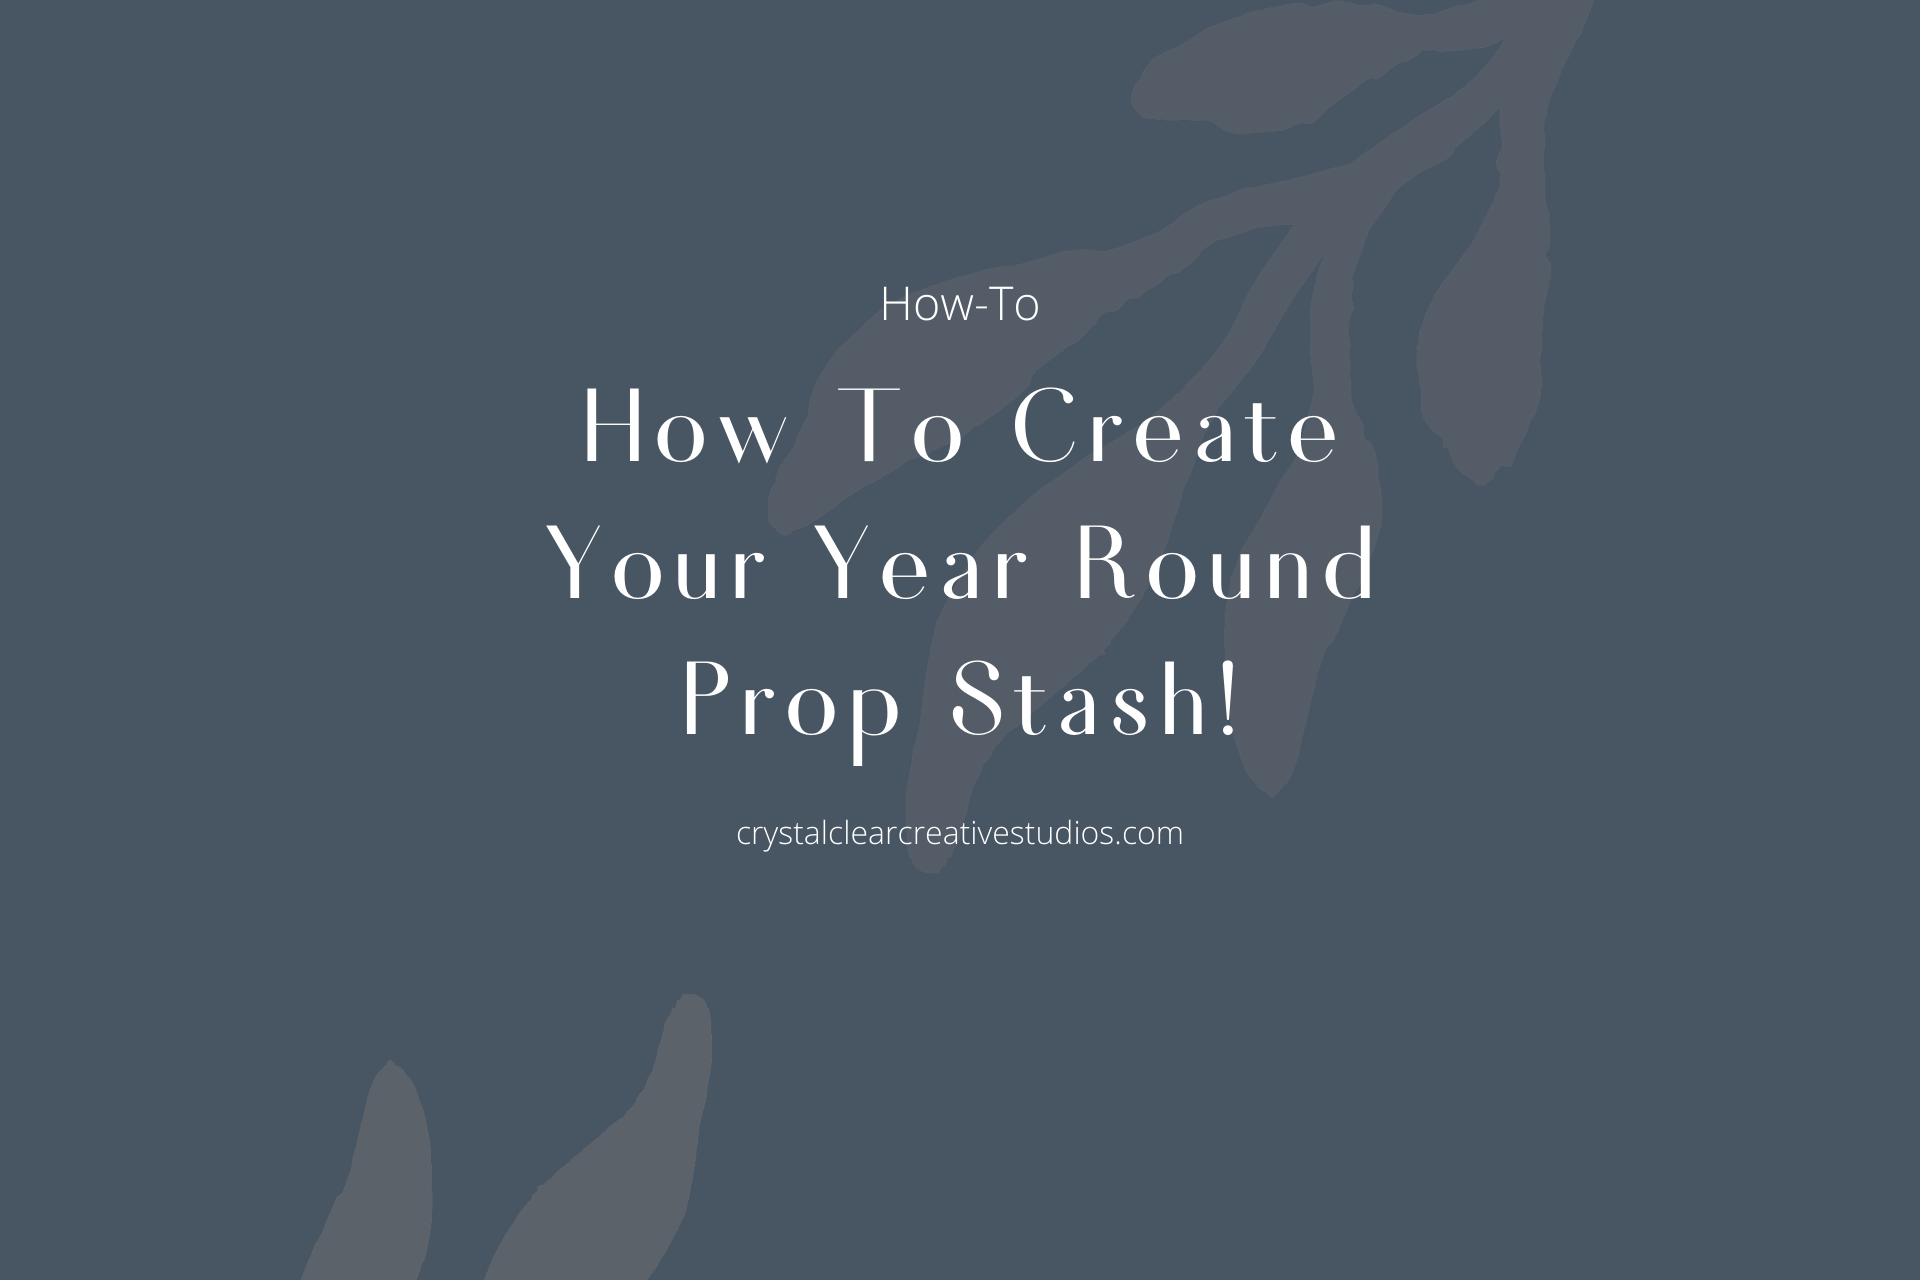 How to Create Your Year Round Prop Stash!